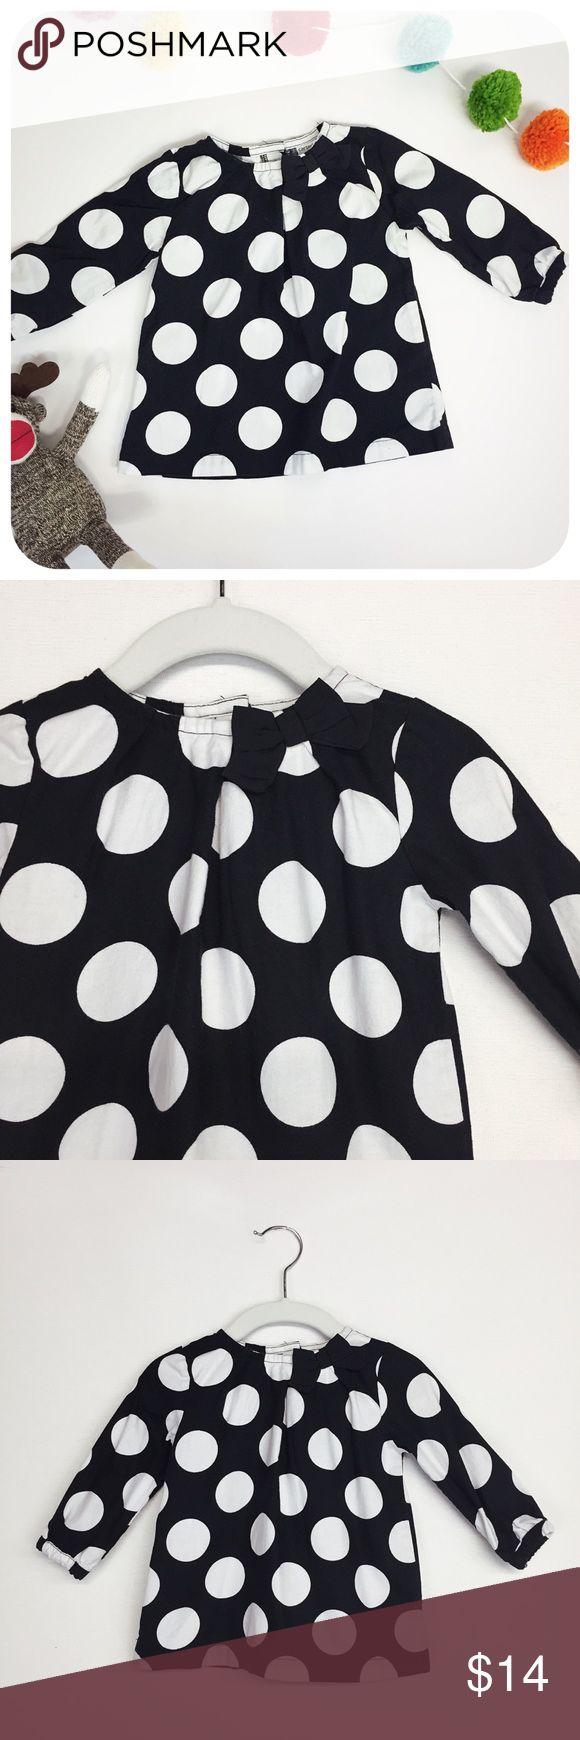 {{ Carter's }} Kids Black & White Polka Dot Tunic Carter's long sleeve polka dot shirt. Cotton voile, big white dots on black, bow at neck, swing style, button back.   {{ CONDITION }} Very Good - very minor wash wear/fading  {{ SIZE }} 12 months  {{ TAGS }} dress pretty feminine contrast color block girls kids fall winter layer christmas holidays dinner party birthday first one year circles gathered bell  {{ IF YOU LIKE... }} matilda jane . baby gap . crewcuts . janie & jack Carter's Shirts…